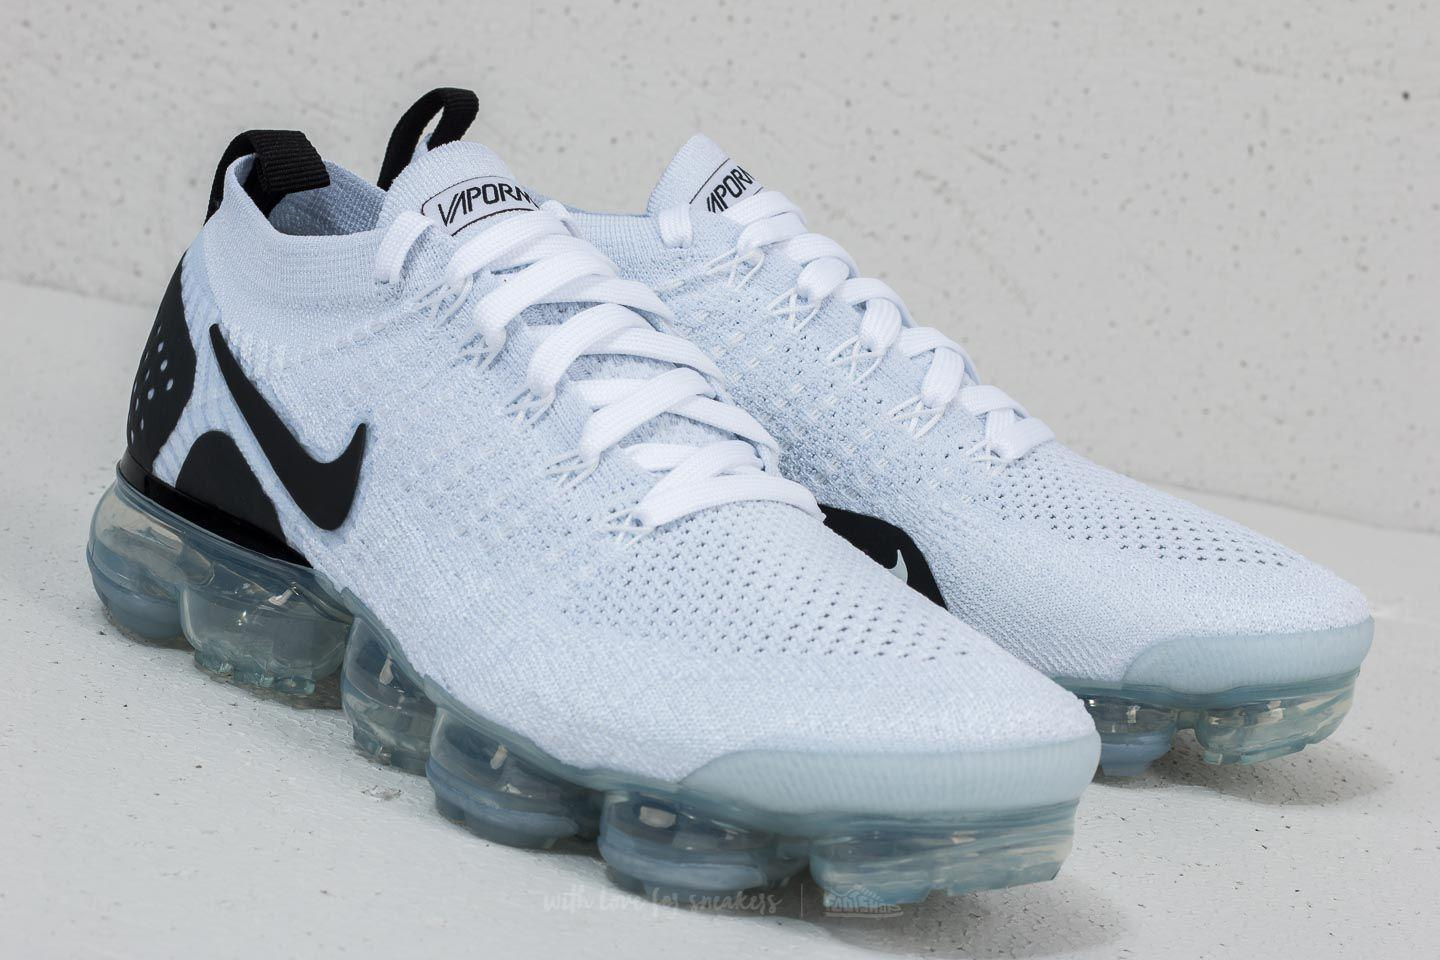 competitive price 96f9f 1111c Nike Air Vapormax Flyknit 2 White/ Black-black for men